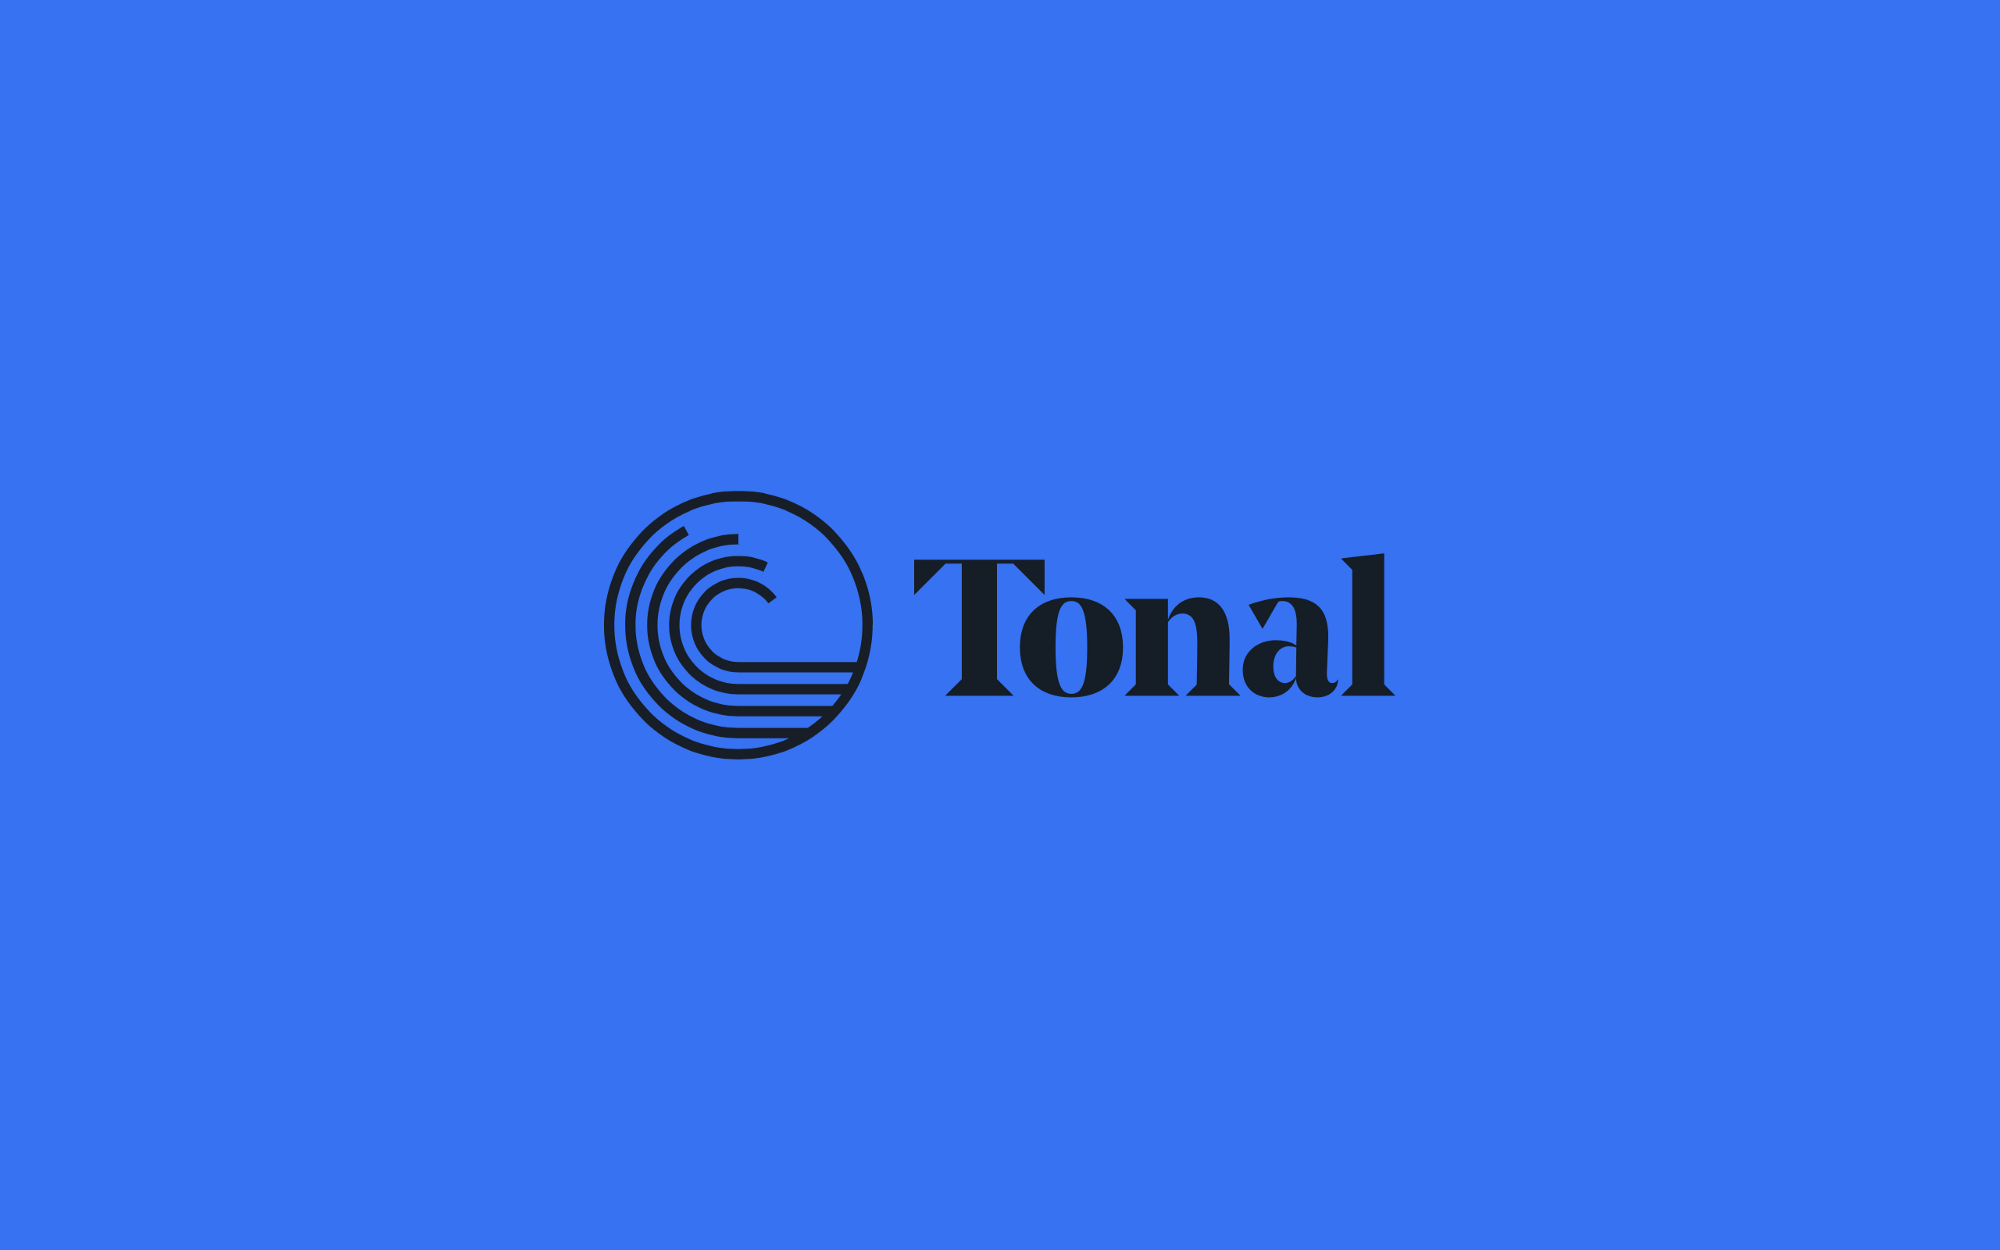 Introducing Tonal: A Minimalist Music App for Collectors and Audiophiles